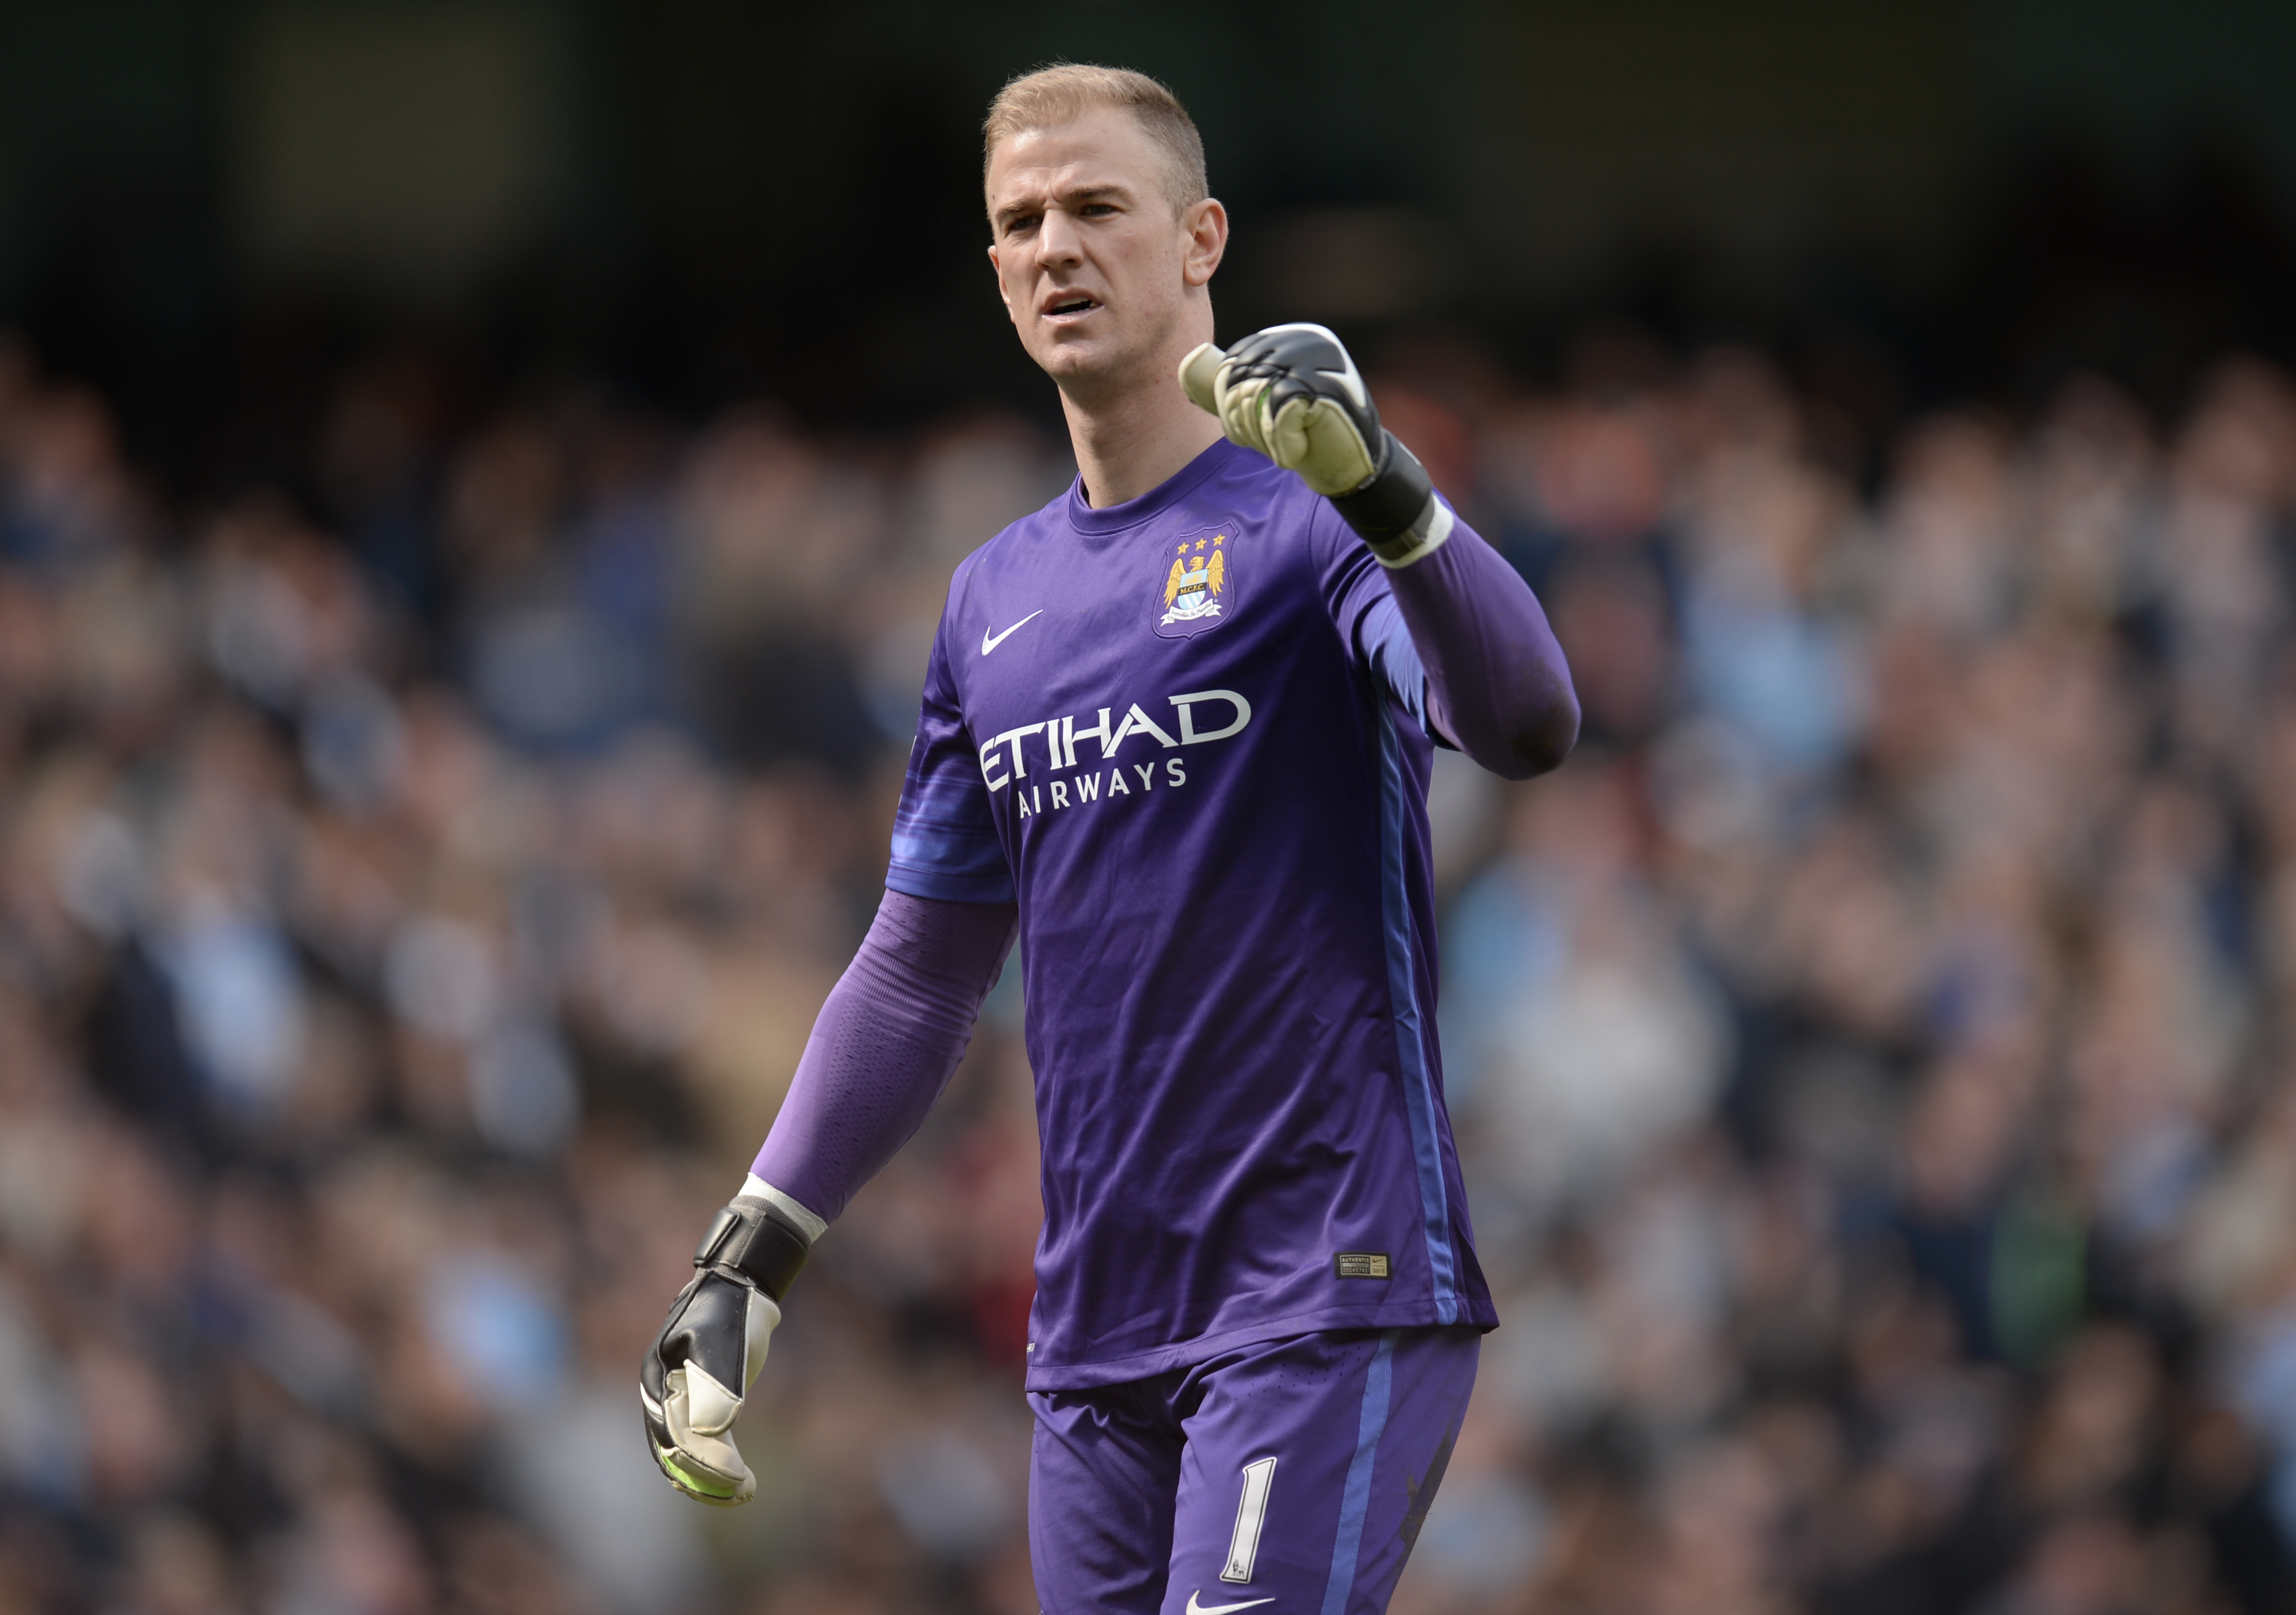 Manchester City's English goalkeeper Joe Hart celebrates after City score their third goal during the English Premier League football match between Manchester City and Stoke City at the Etihad Stadium in Manchester, north west England, on April 23, 2016. / AFP PHOTO / OLI SCARFF / RESTRICTED TO EDITORIAL USE. No use with unauthorized audio, video, data, fixture lists, club/league logos or 'live' services. Online in-match use limited to 75 images, no video emulation. No use in betting, games or single club/league/player publications.  /